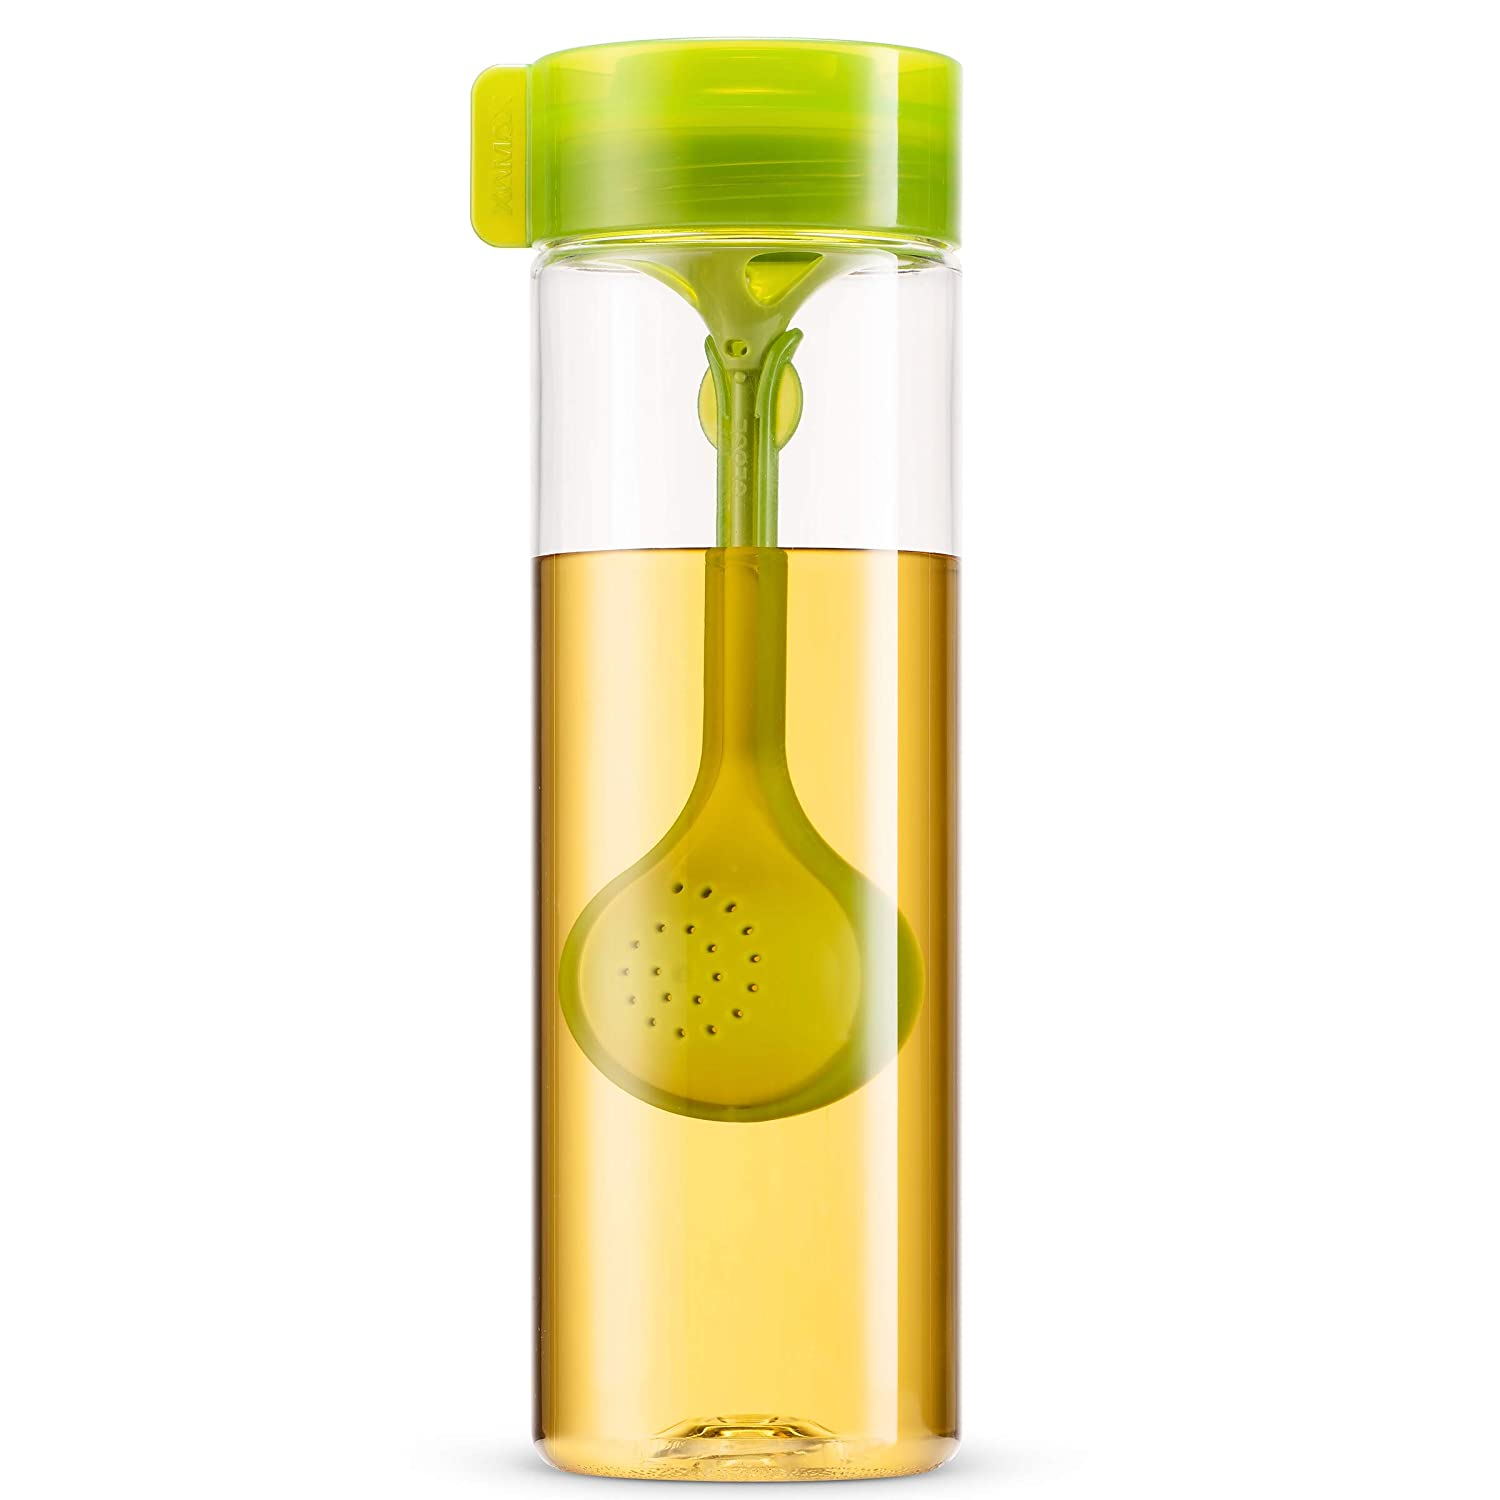 Komax 18.5oz Tea Bottle With Loose Tea Leaf Infuser Spoon - Lightweight and Portable, Travel Size - BPA Free, Unbreakable Tritan Plastic - Airtight Leak proof Screw Cap - Freezer and Dishwasher Safe